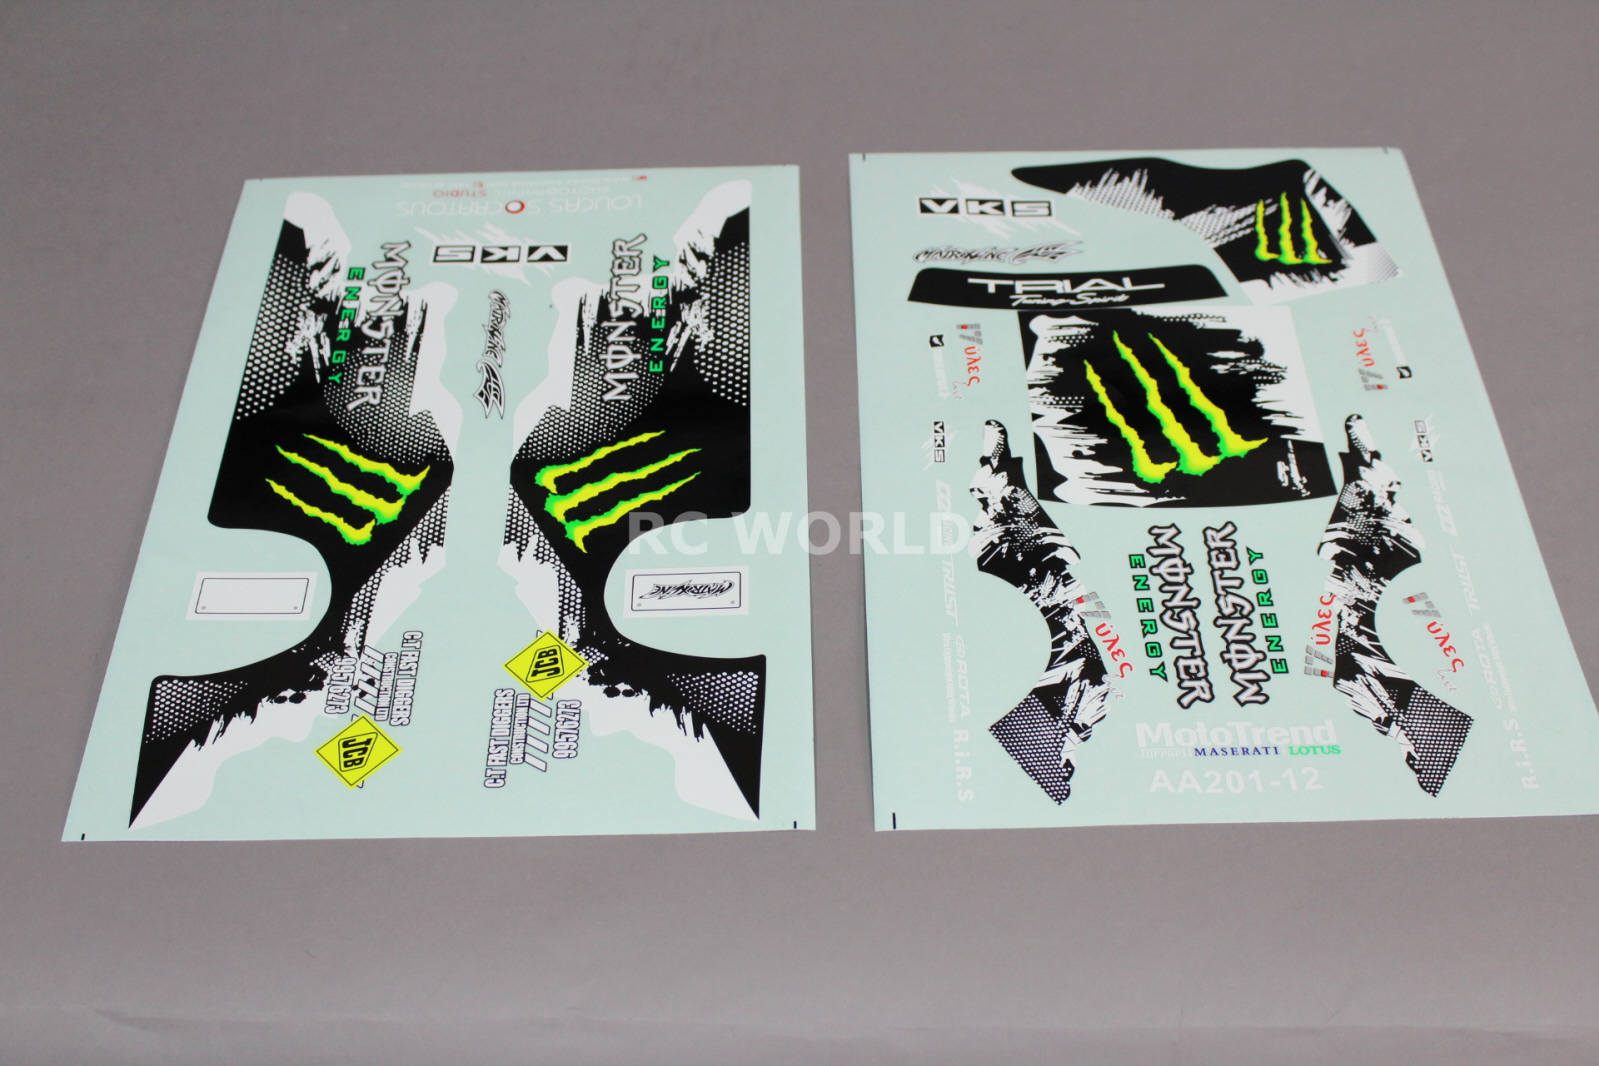 Camaro Monster Truck >> Monster Energy Stickers For Rc Cars - rc car truck racing drift decals stickers monster energy ...